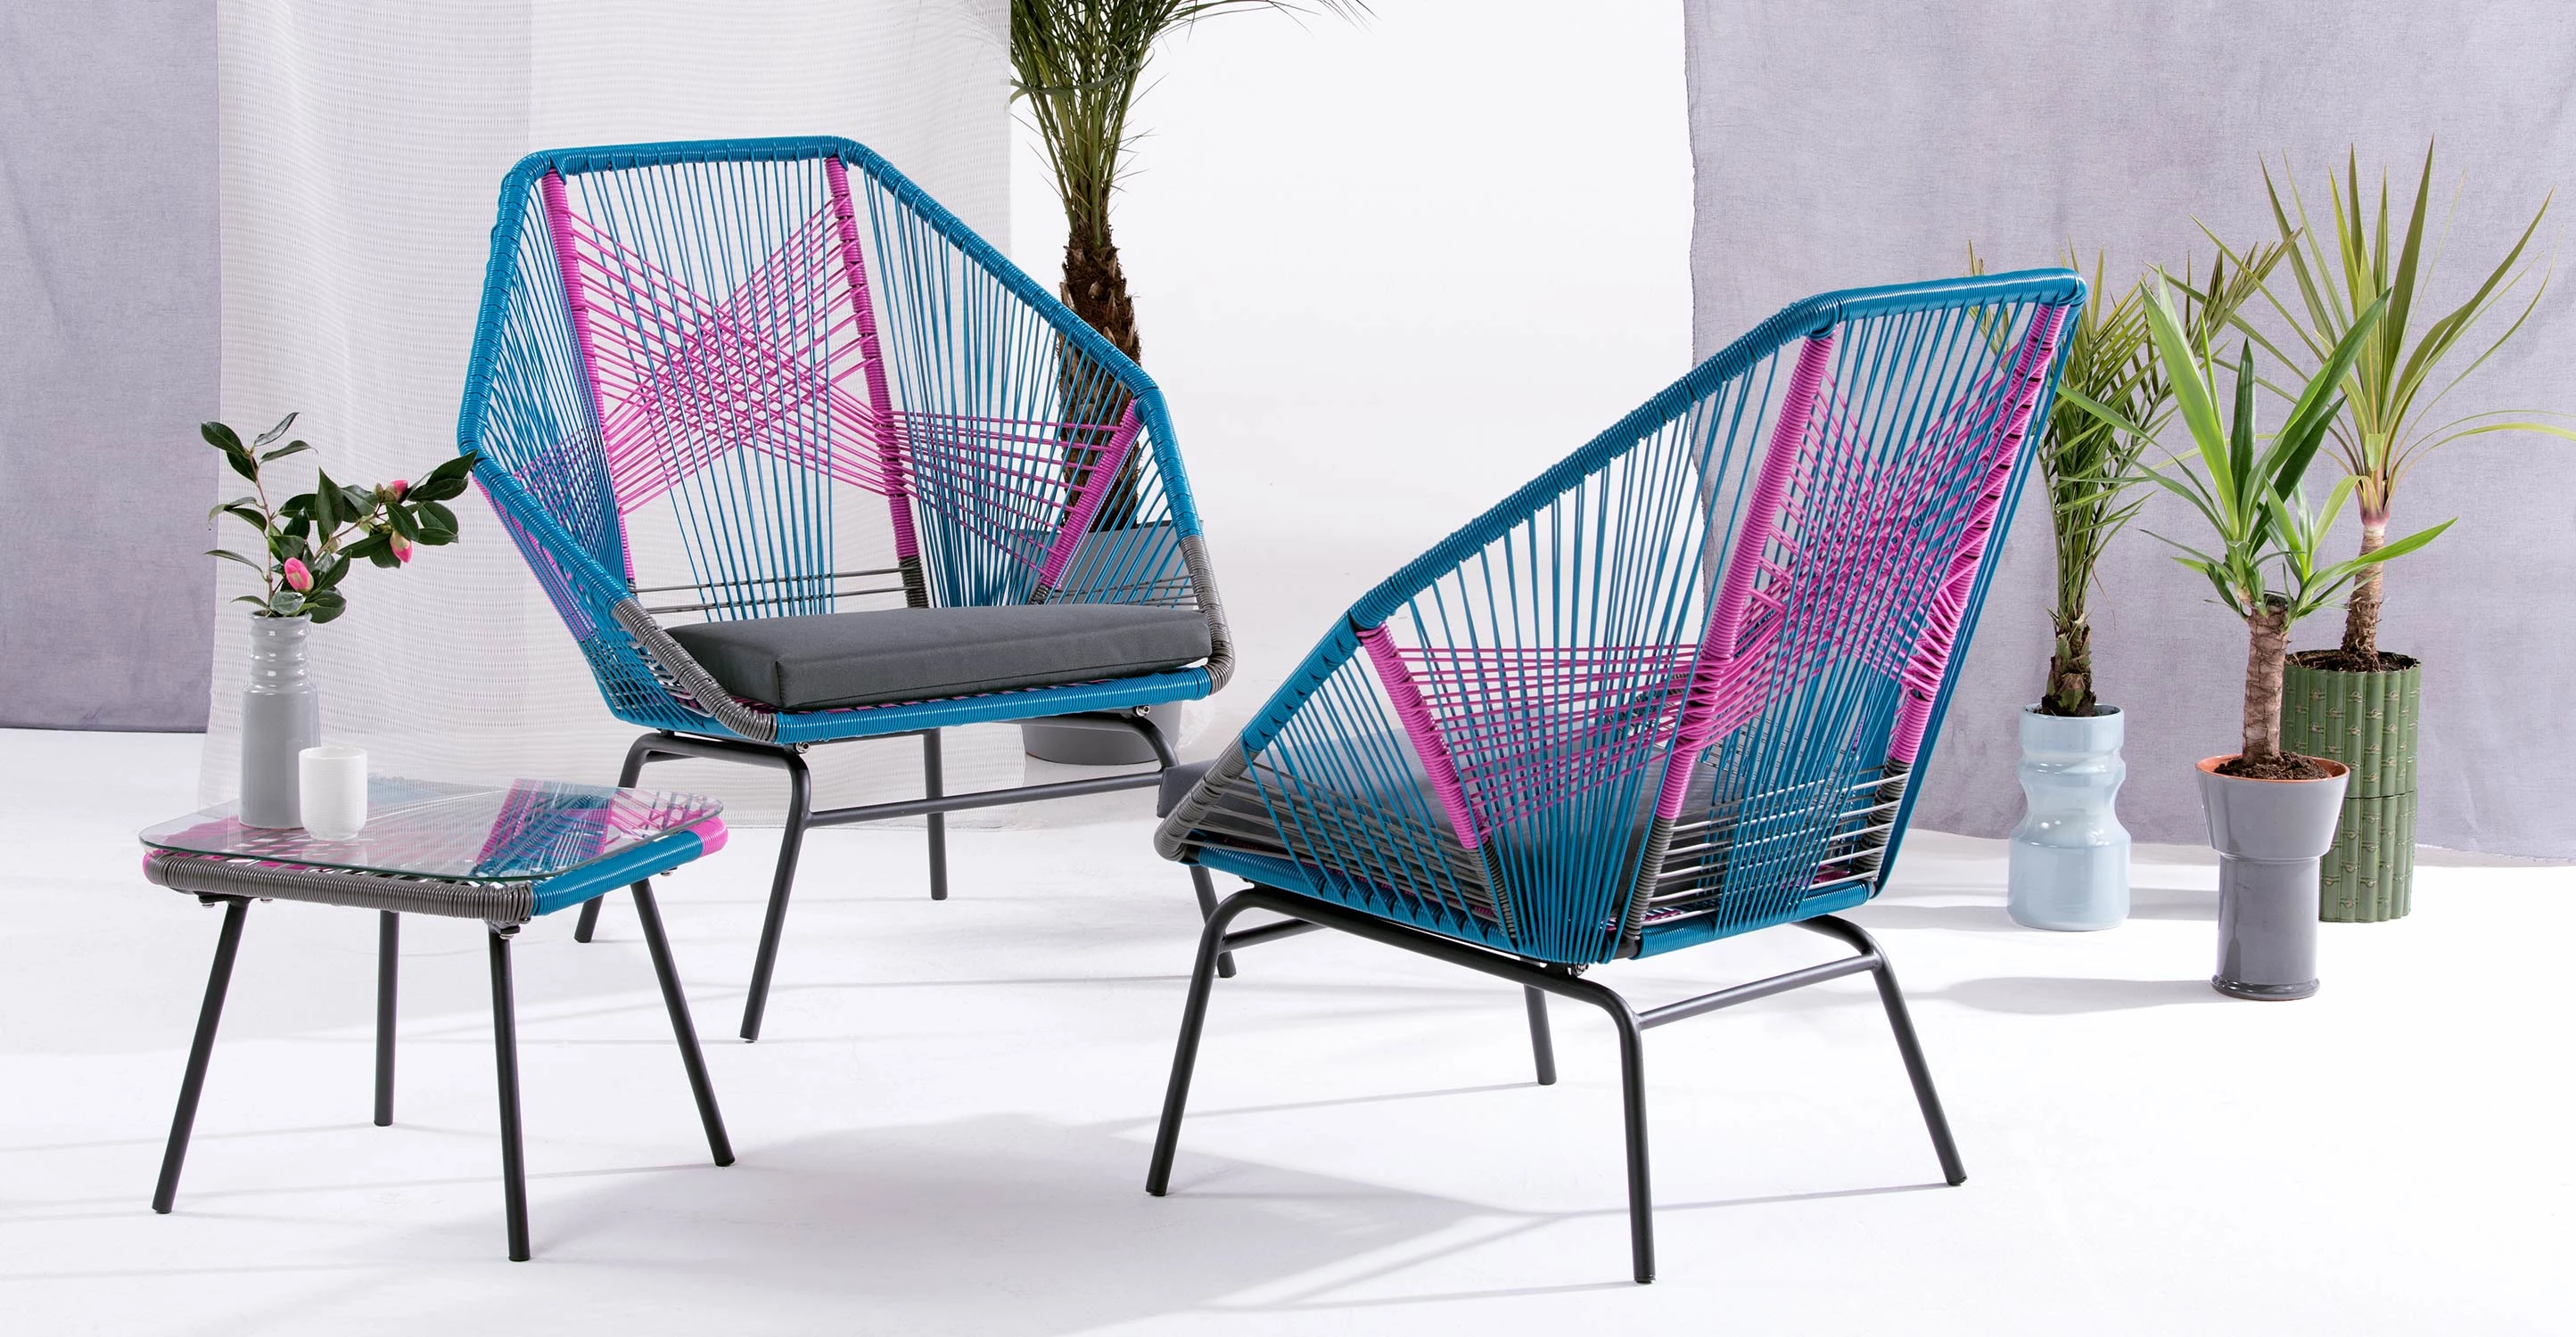 Acapulco chair cb2 - Copa Outdoor Aperitif Set Spectrum Pink 329 Acapulco Chair Table Blue